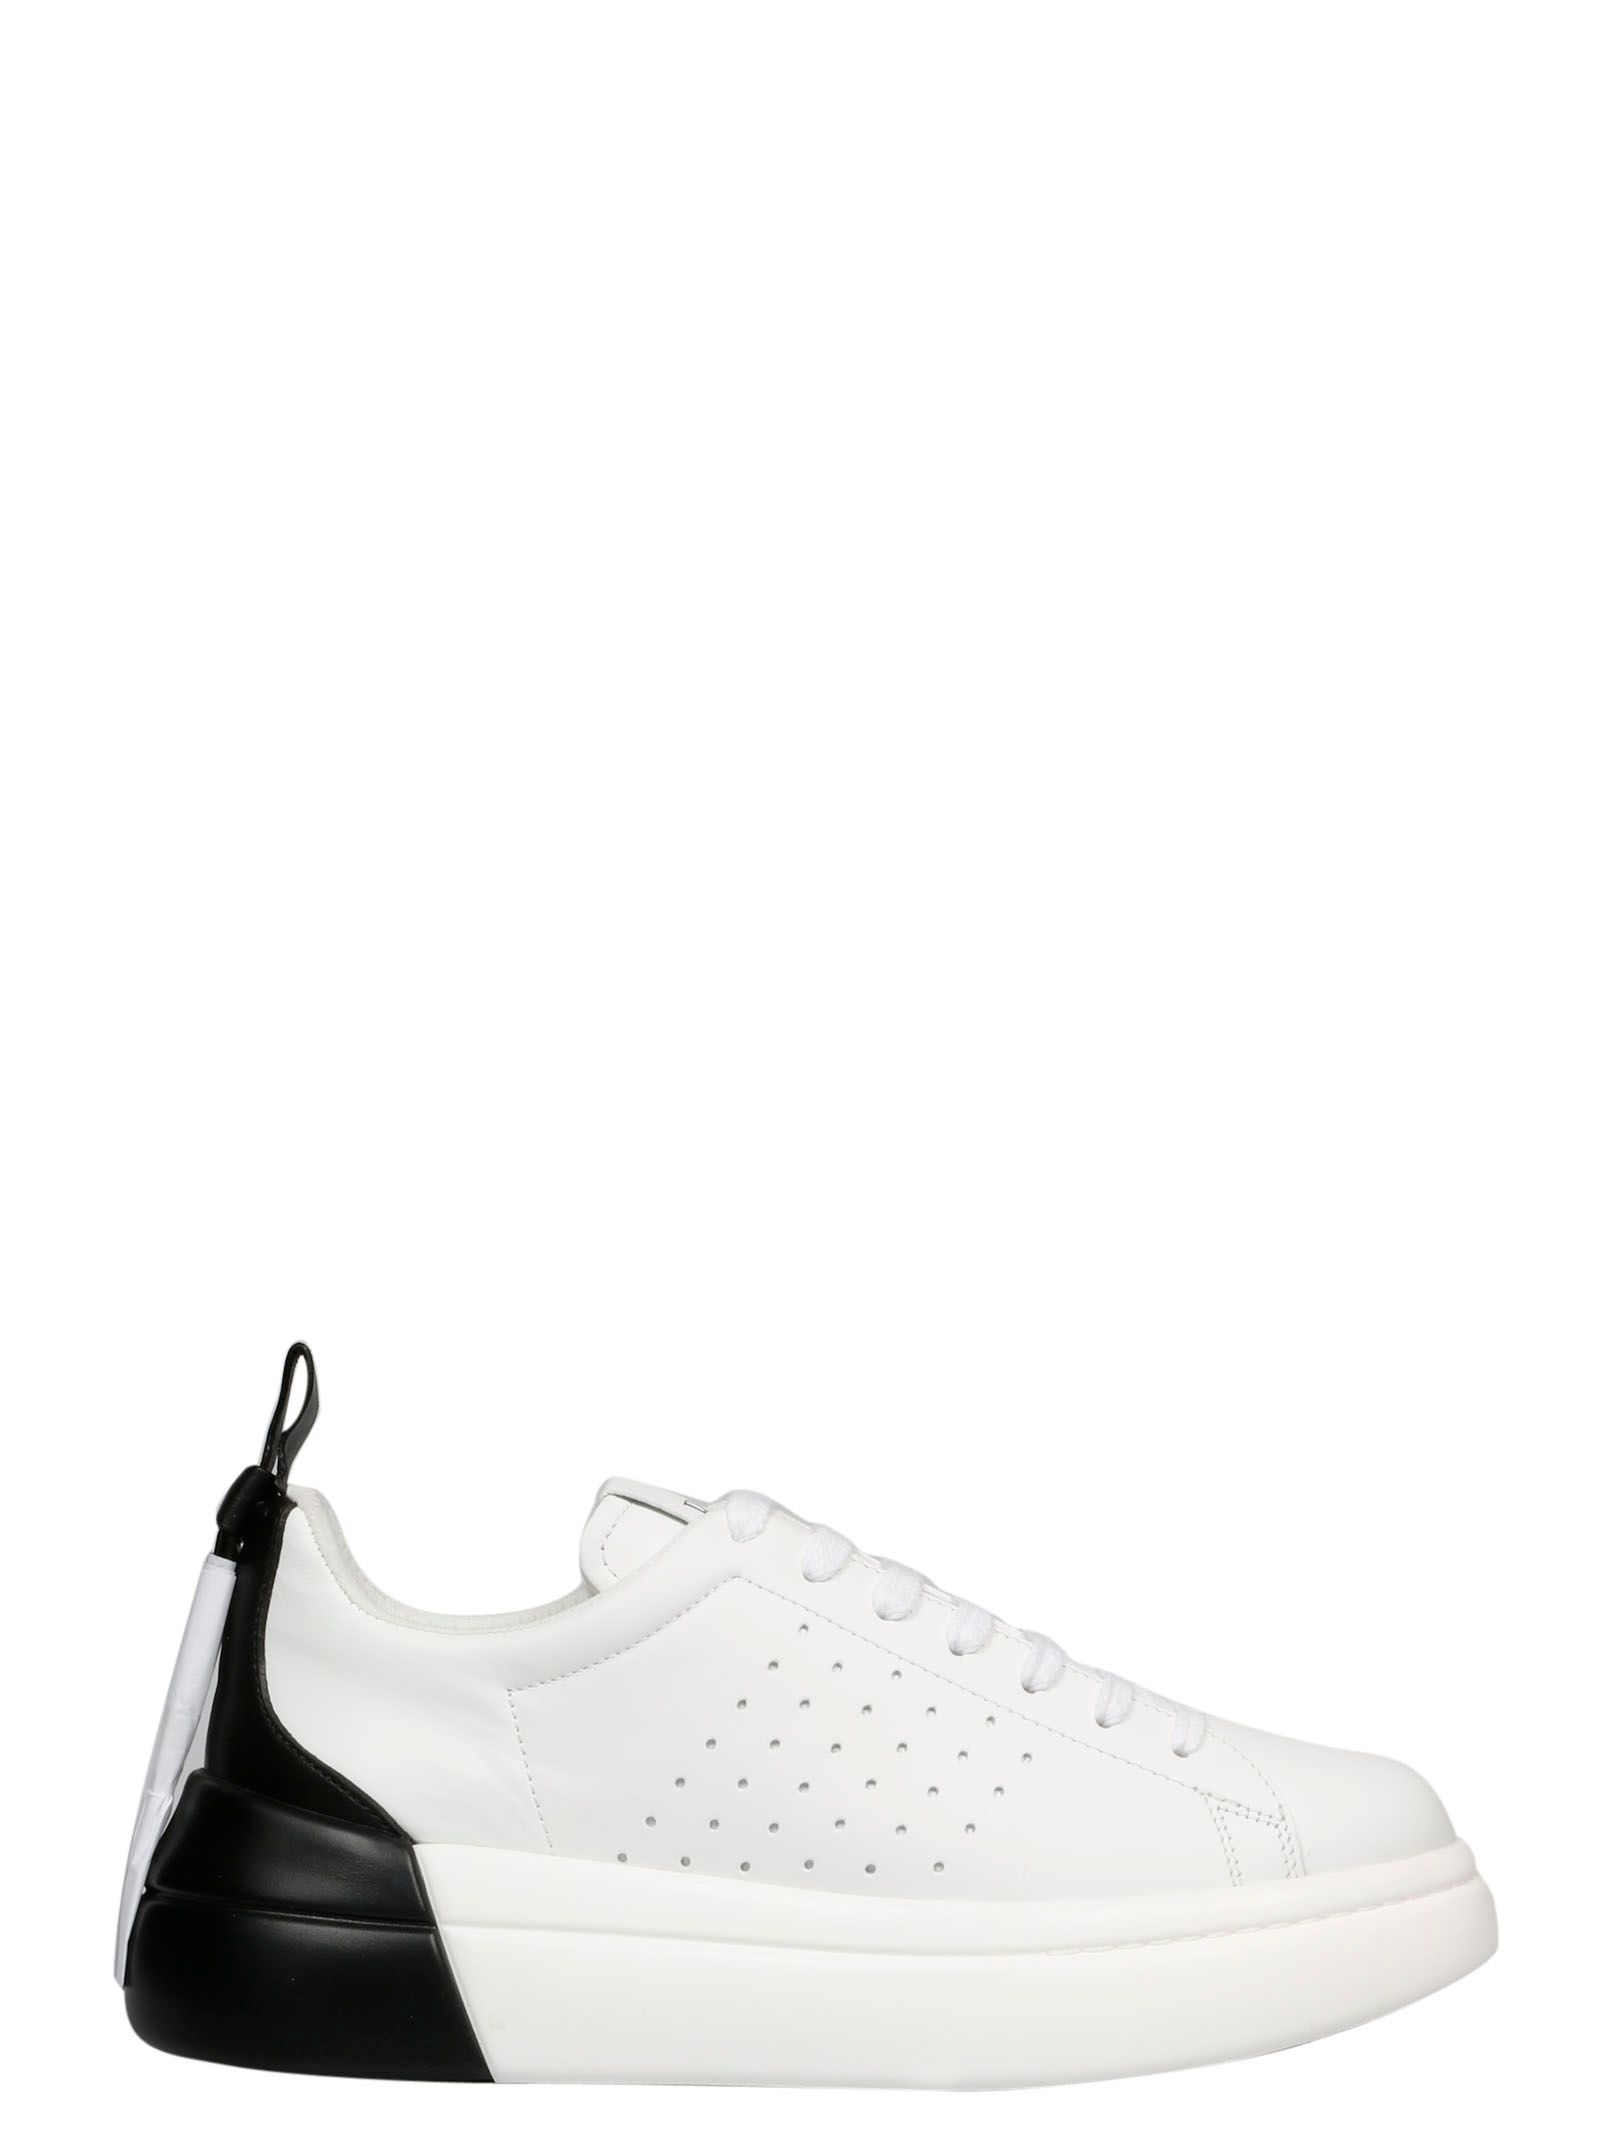 Red Valentino Leathers RED VALENTINO WOMEN'S WHITE LEATHER SNEAKERS